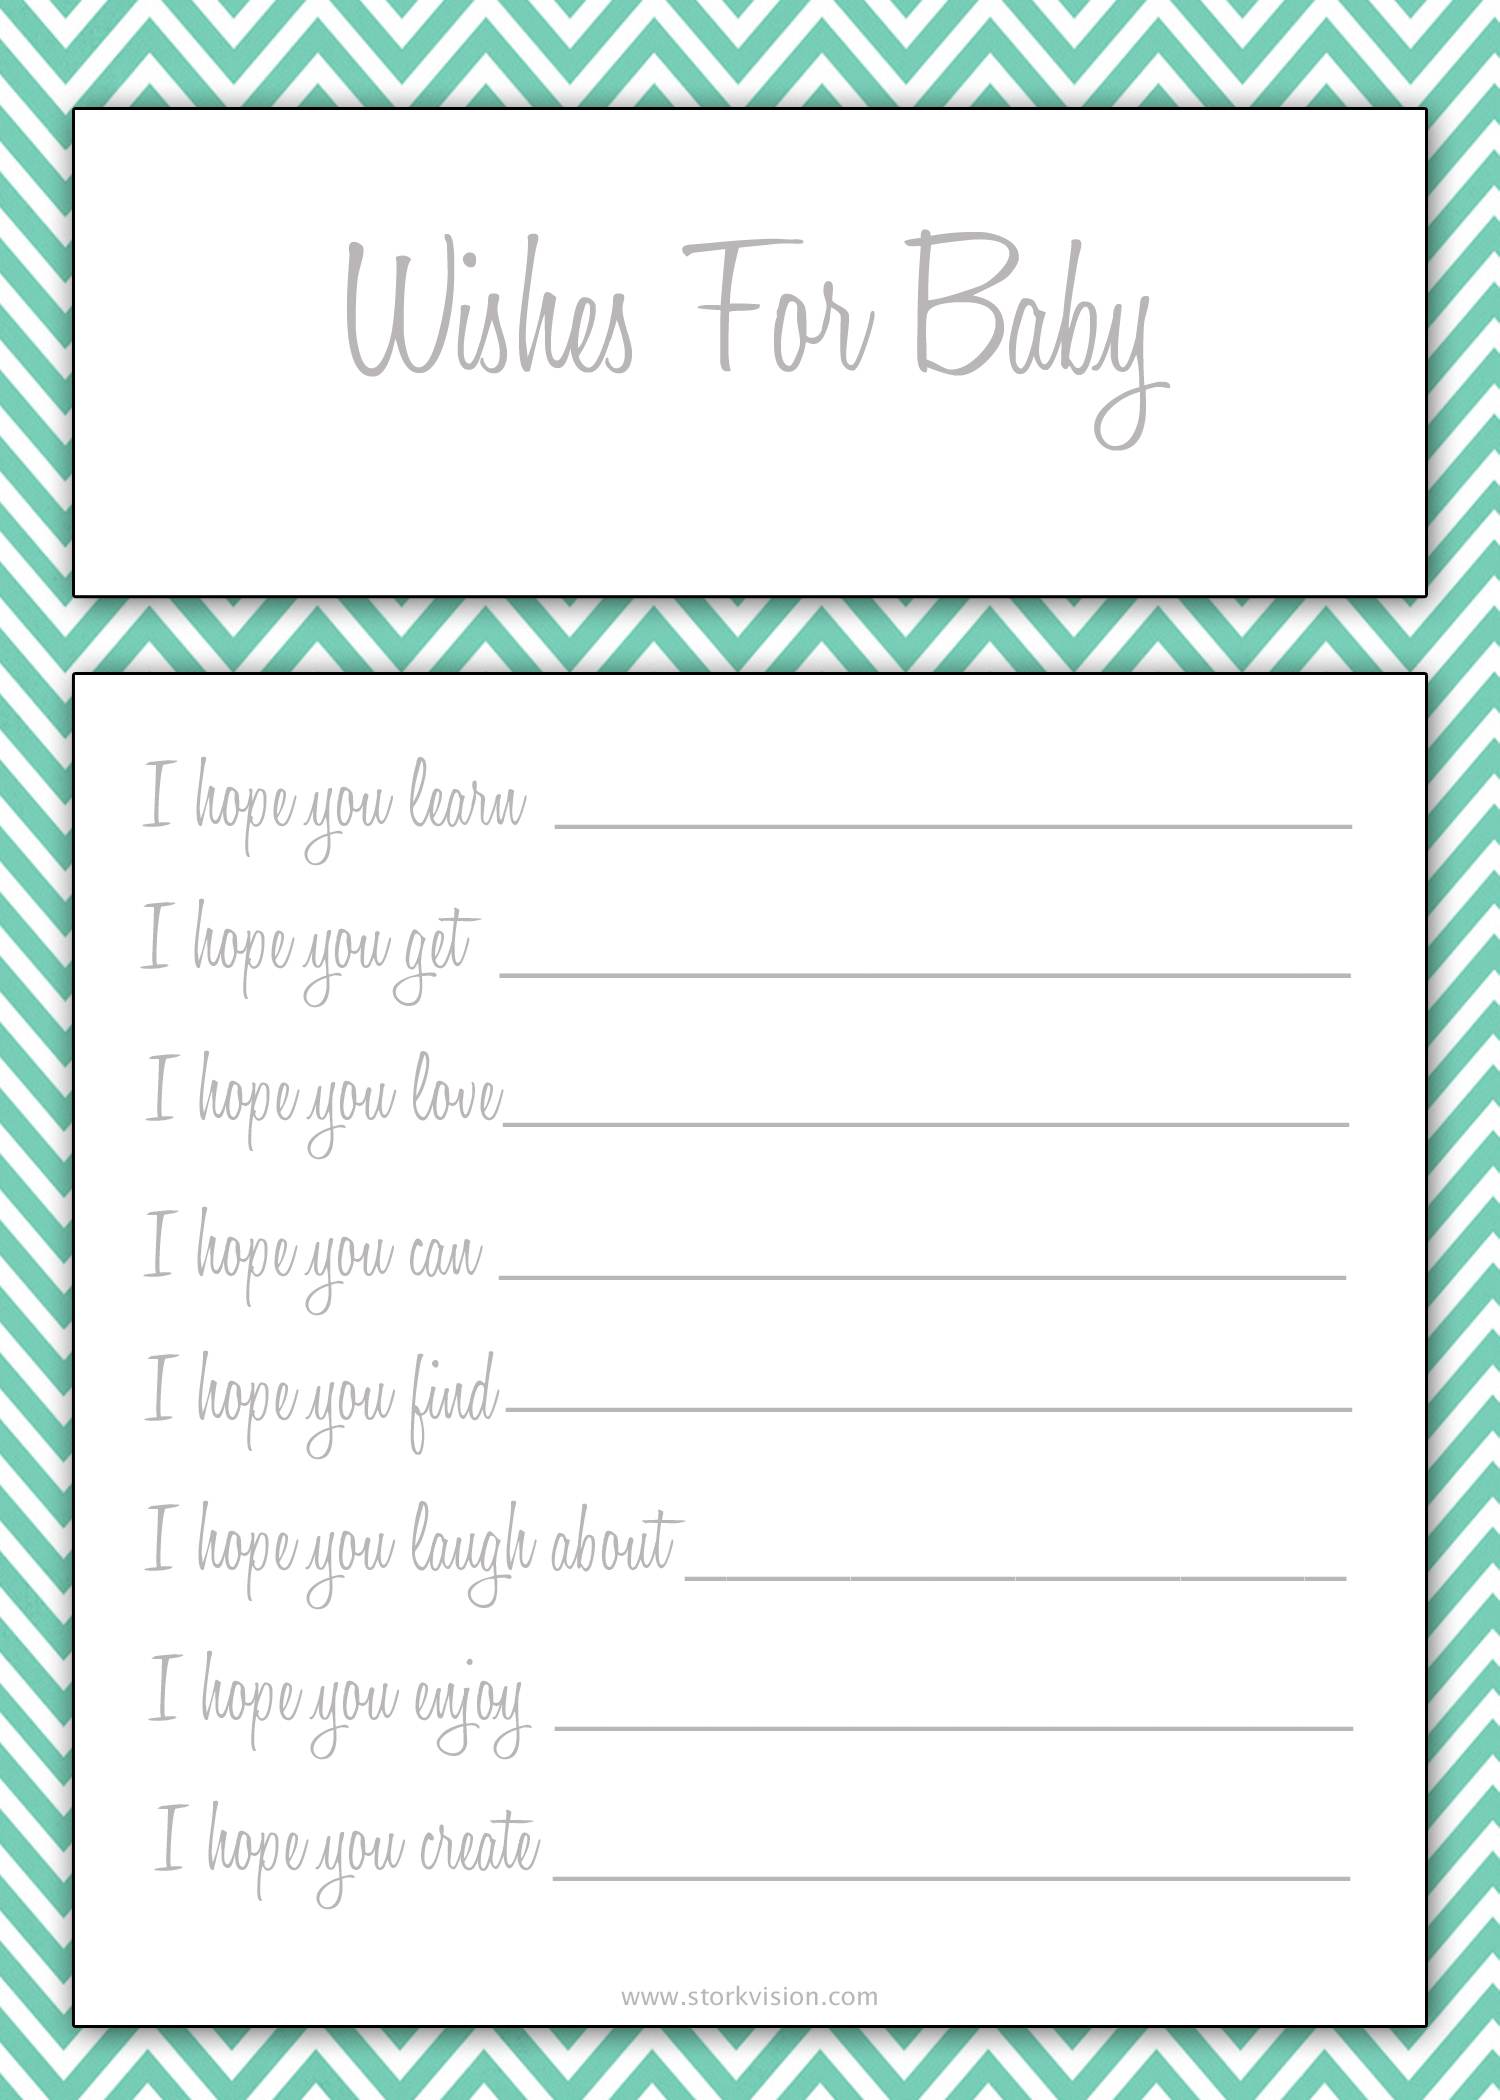 5 Images of Free Printable Baby Wishes Cards